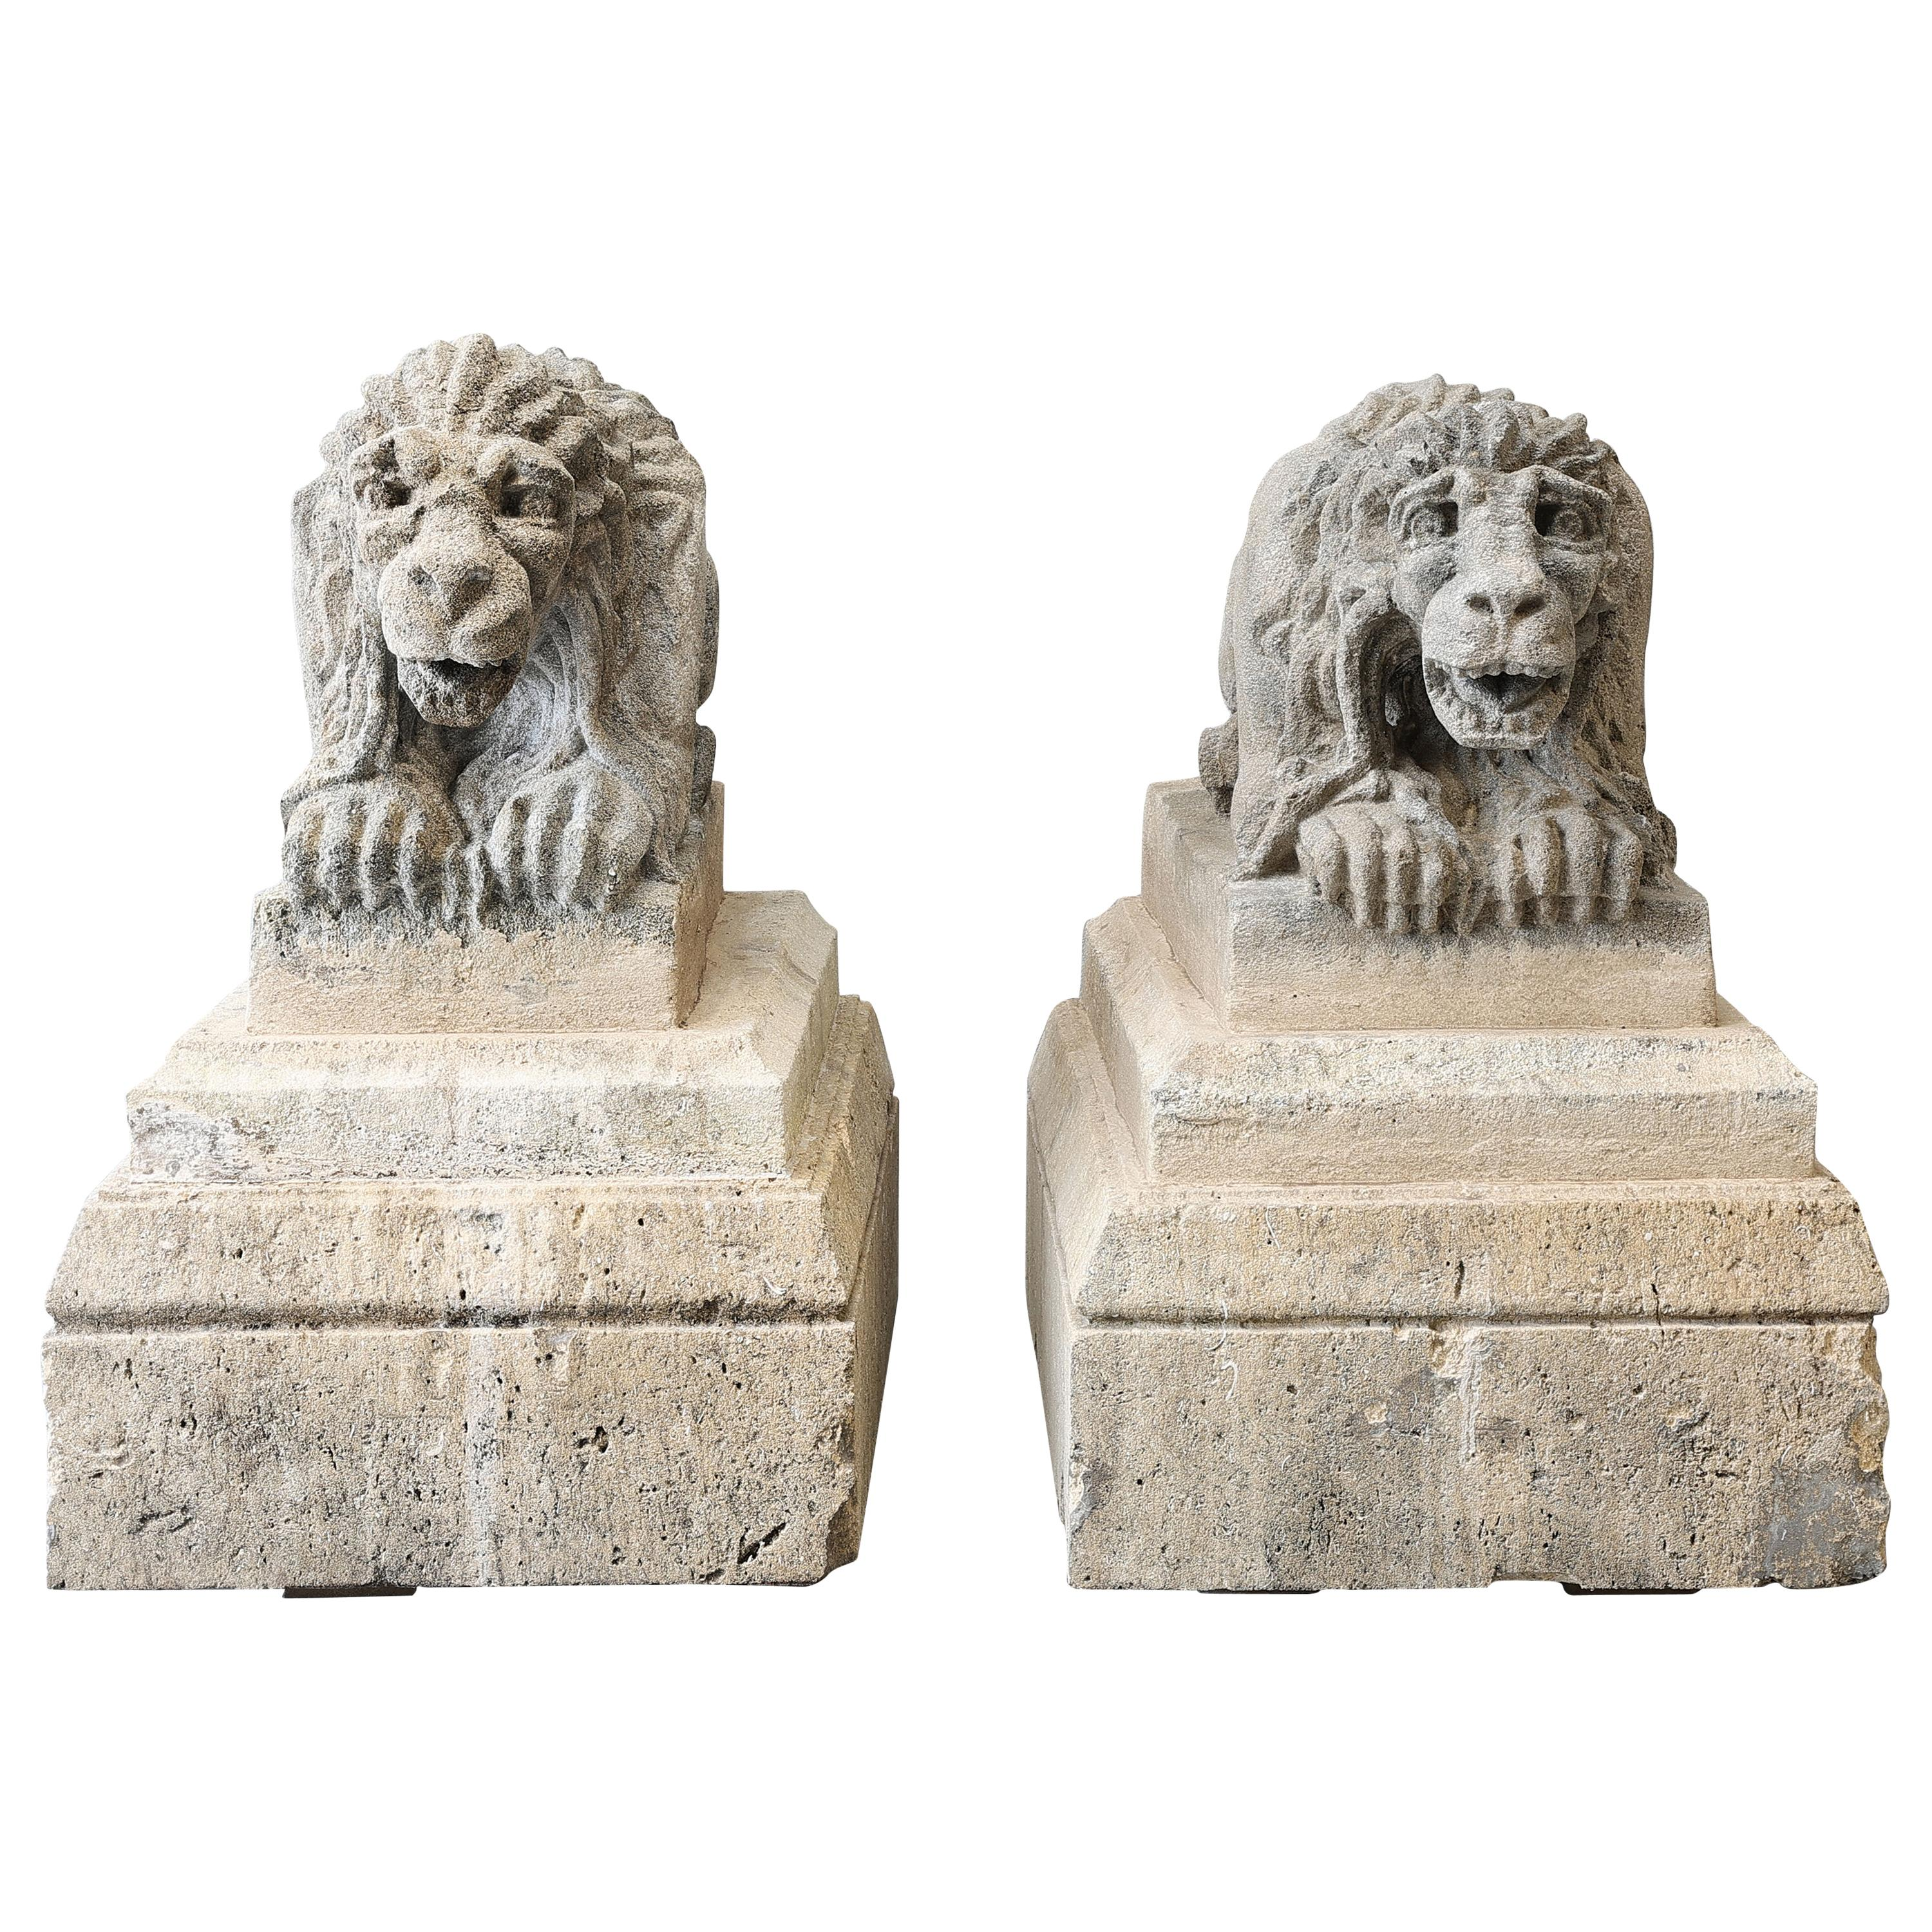 Antique Set of Lions on a Pedestal of French Limestone from the 19th Century